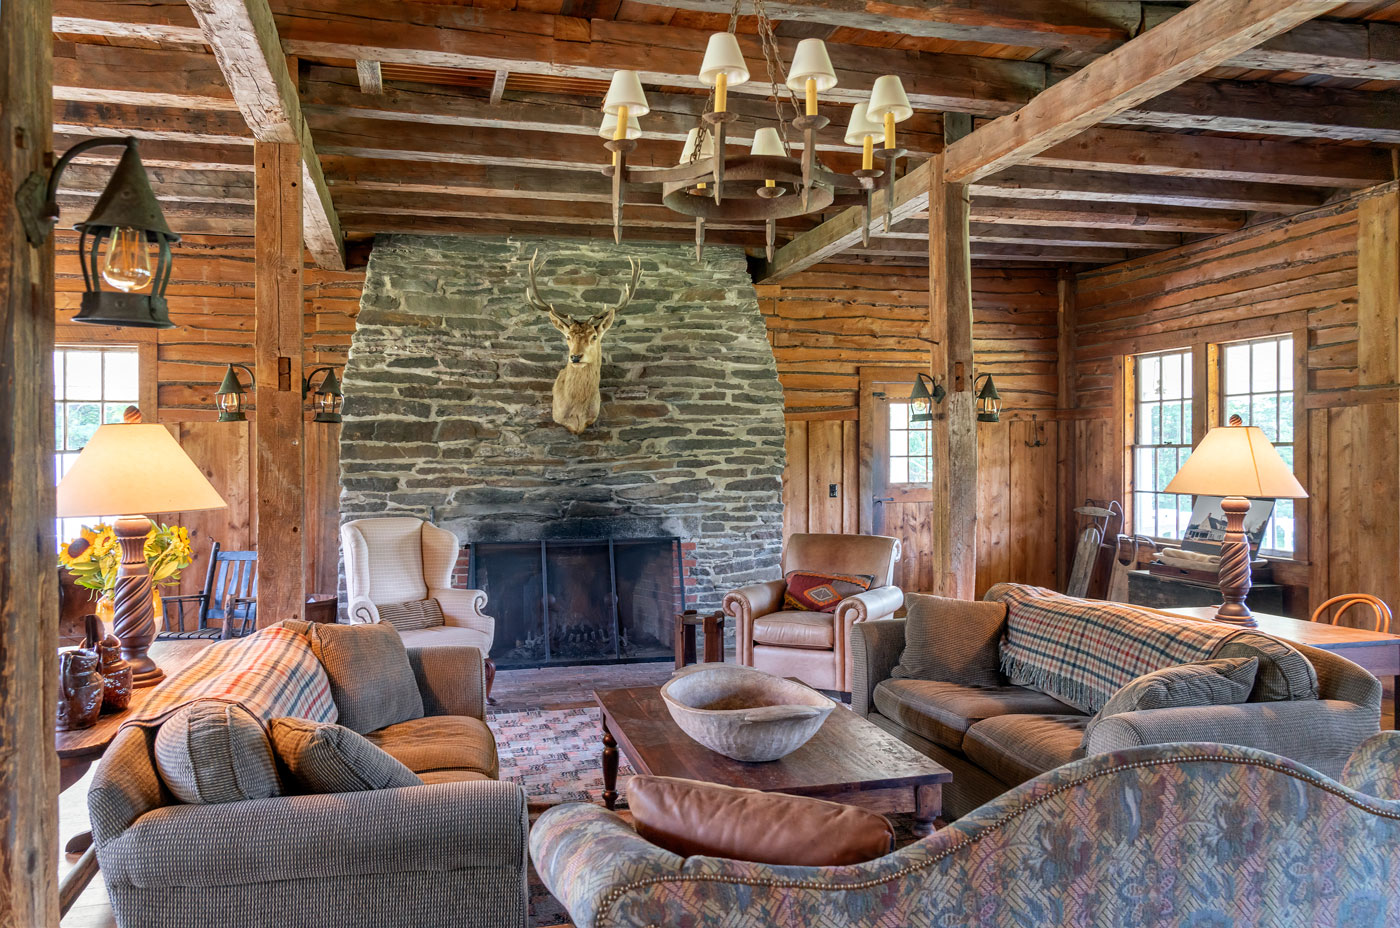 Rustic living room design by Michael Carter of Carter & Company